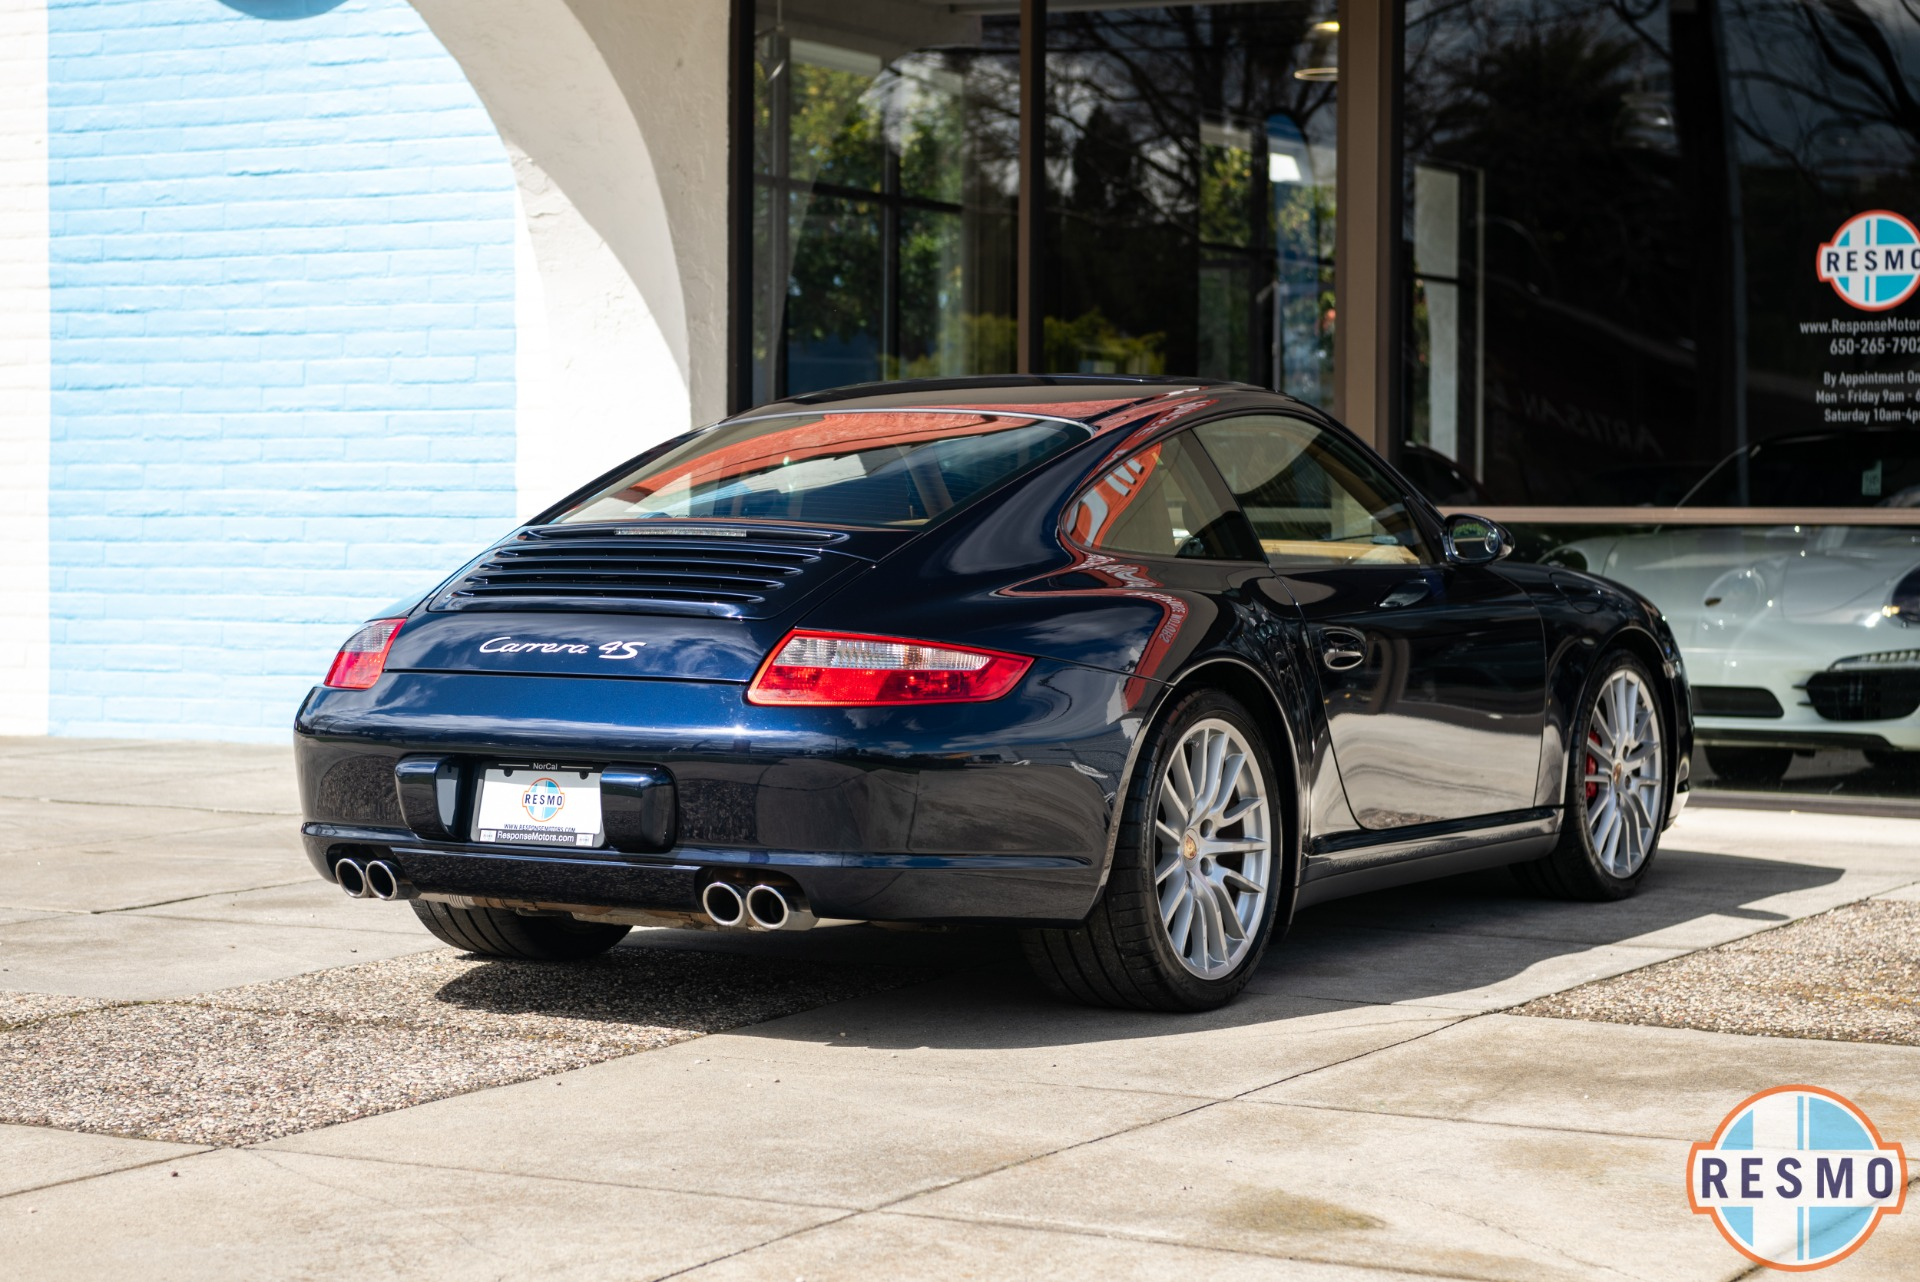 Used 2008 Porsche 911 Carrera 4S Used 2008 Porsche 911 Carrera 4S for sale $41,999 at Response Motors in Mountain View CA 6